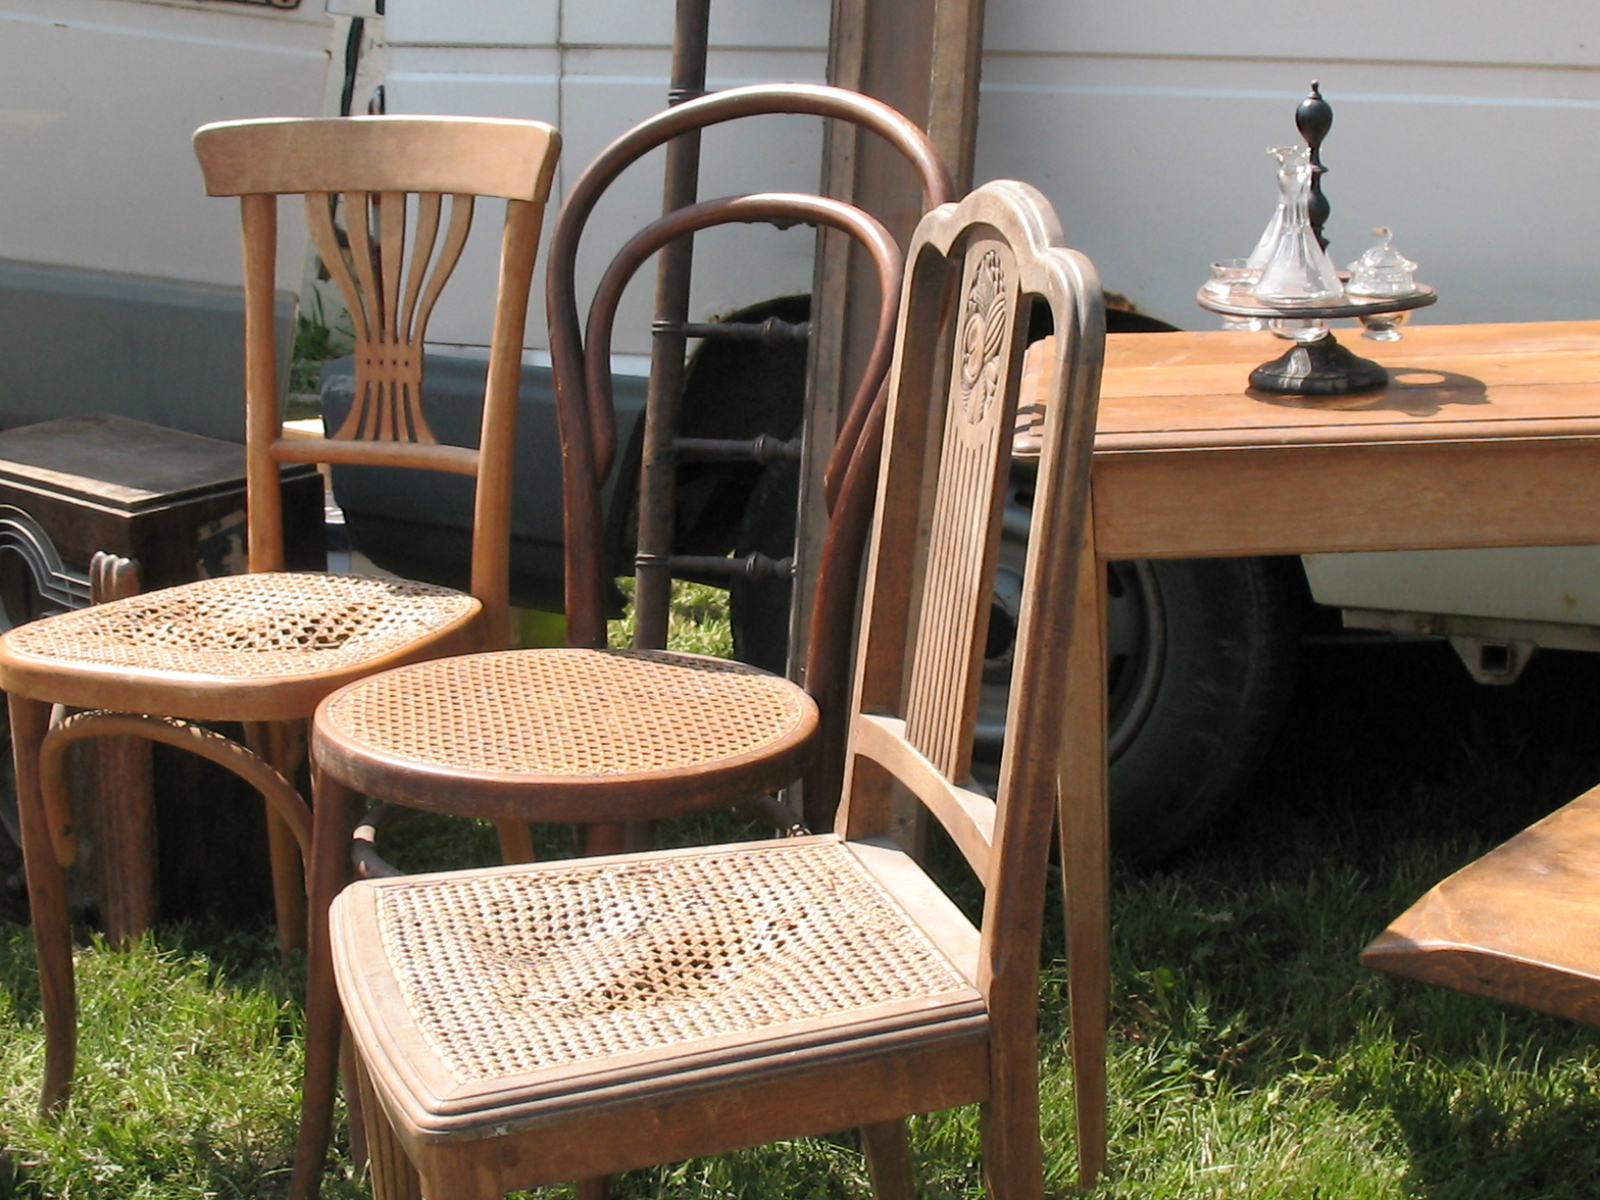 Three antique wooden chairs and table displayed at an outdoor flea-market